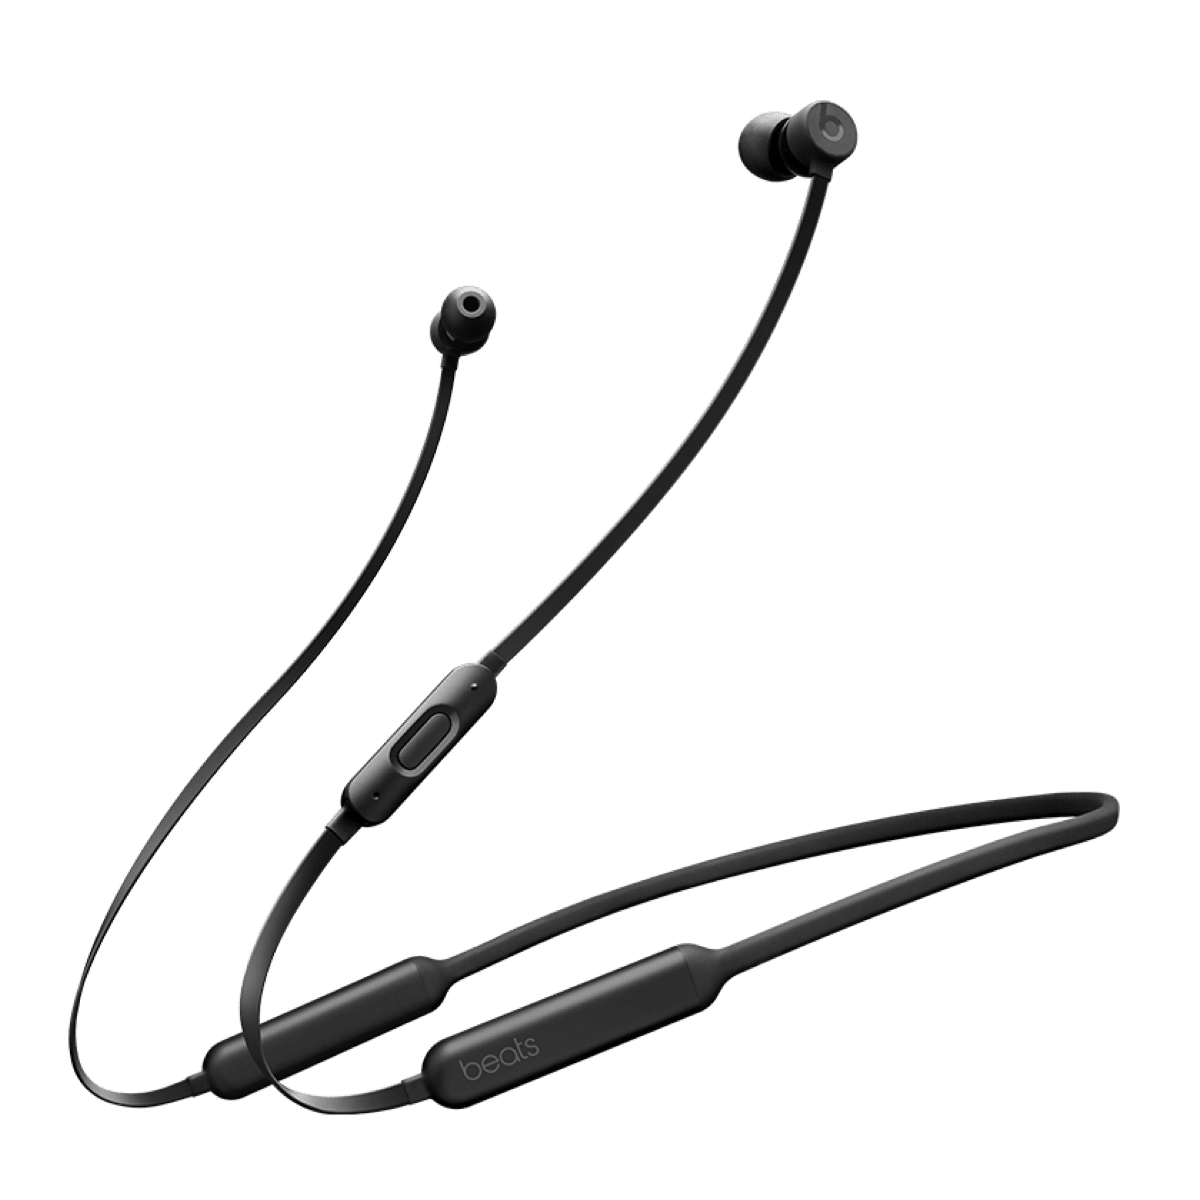 BeatsX headphones in our list of AirPods alternatives.